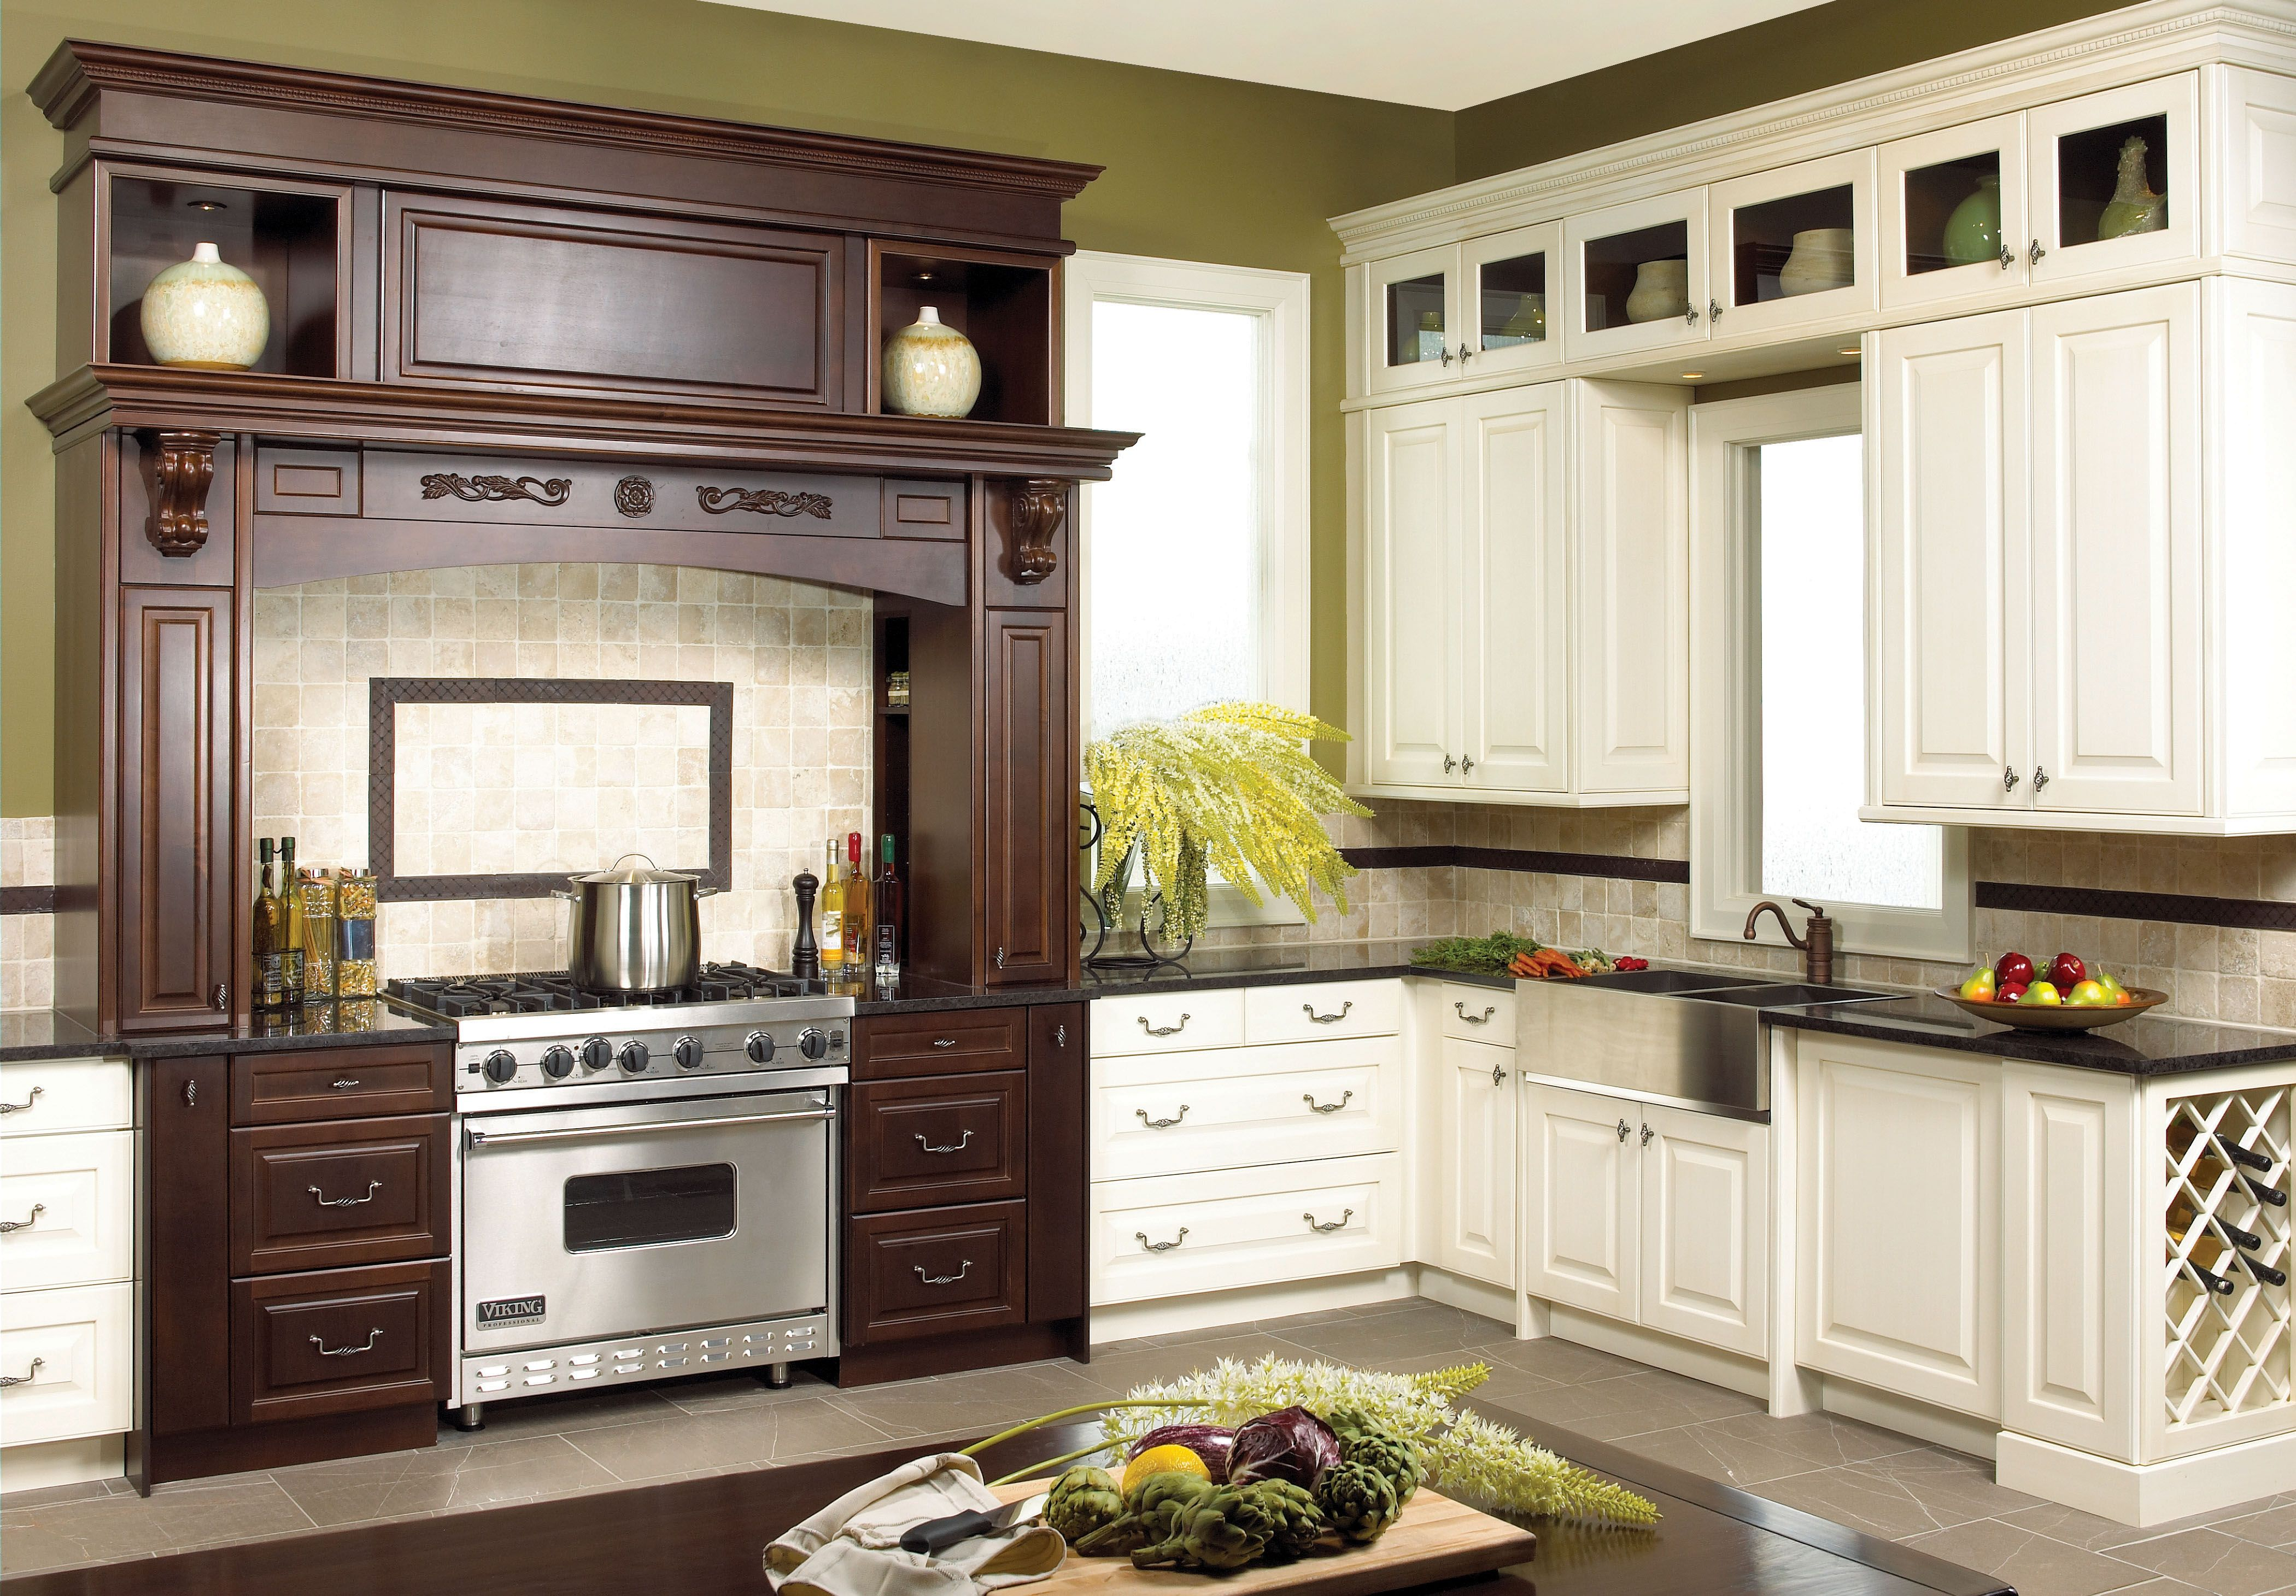 Best Aya Kitchens Offers Quality Cabinets In The Blink Of An 400 x 300